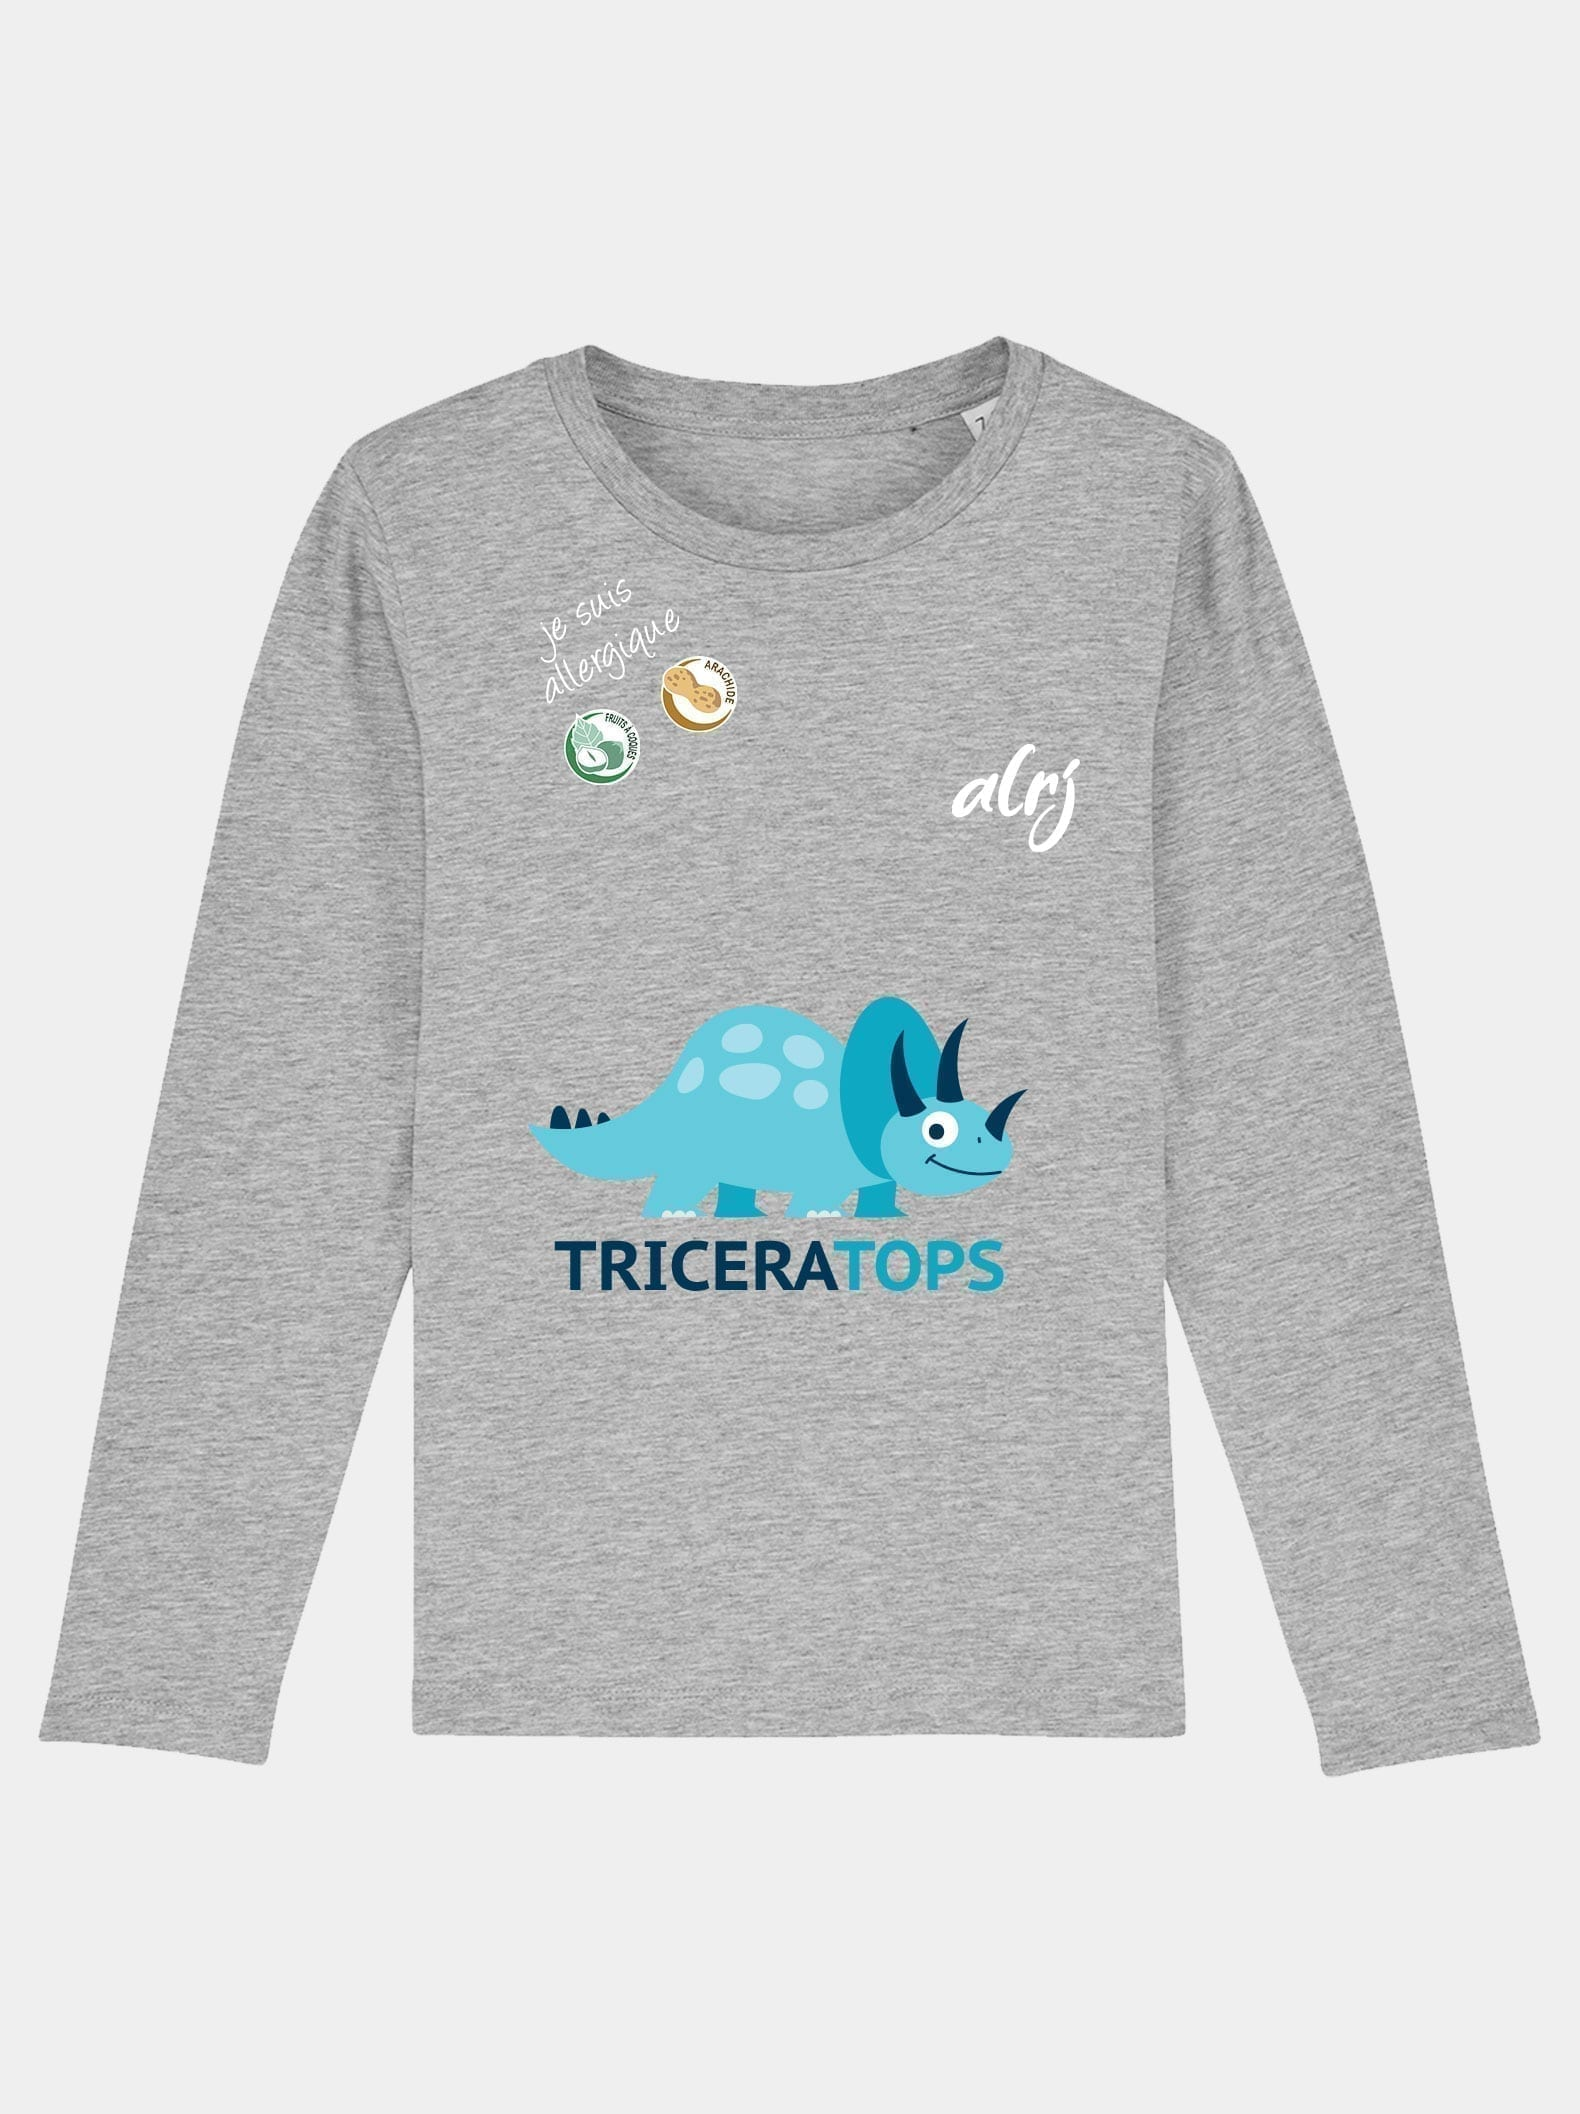 t-shirt manche longue triceratops allergies alimentaires gris chiné